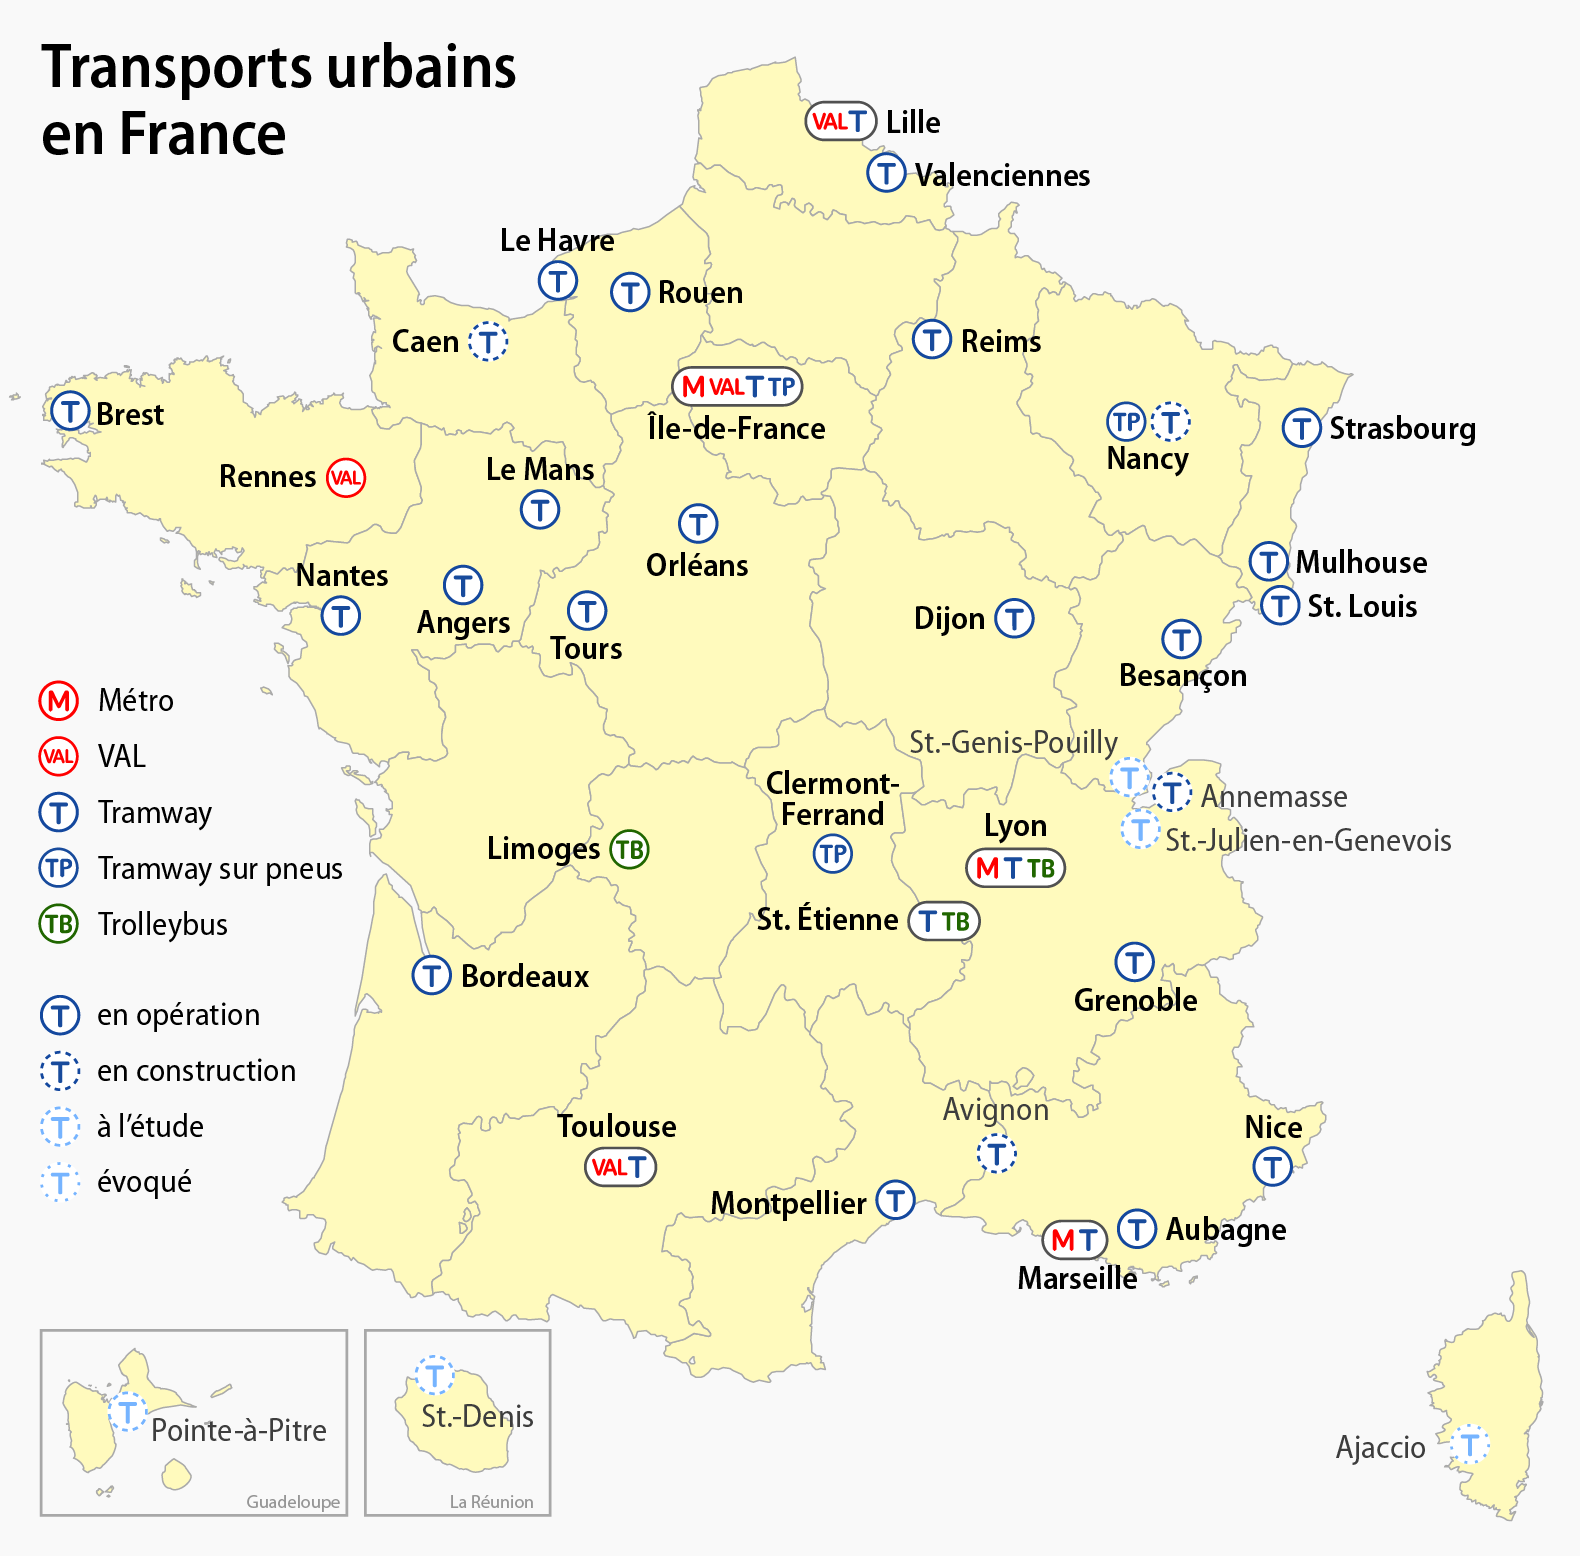 strasbourg carte de france File:Carte des transports urbains en France.png   Wikimedia Commons